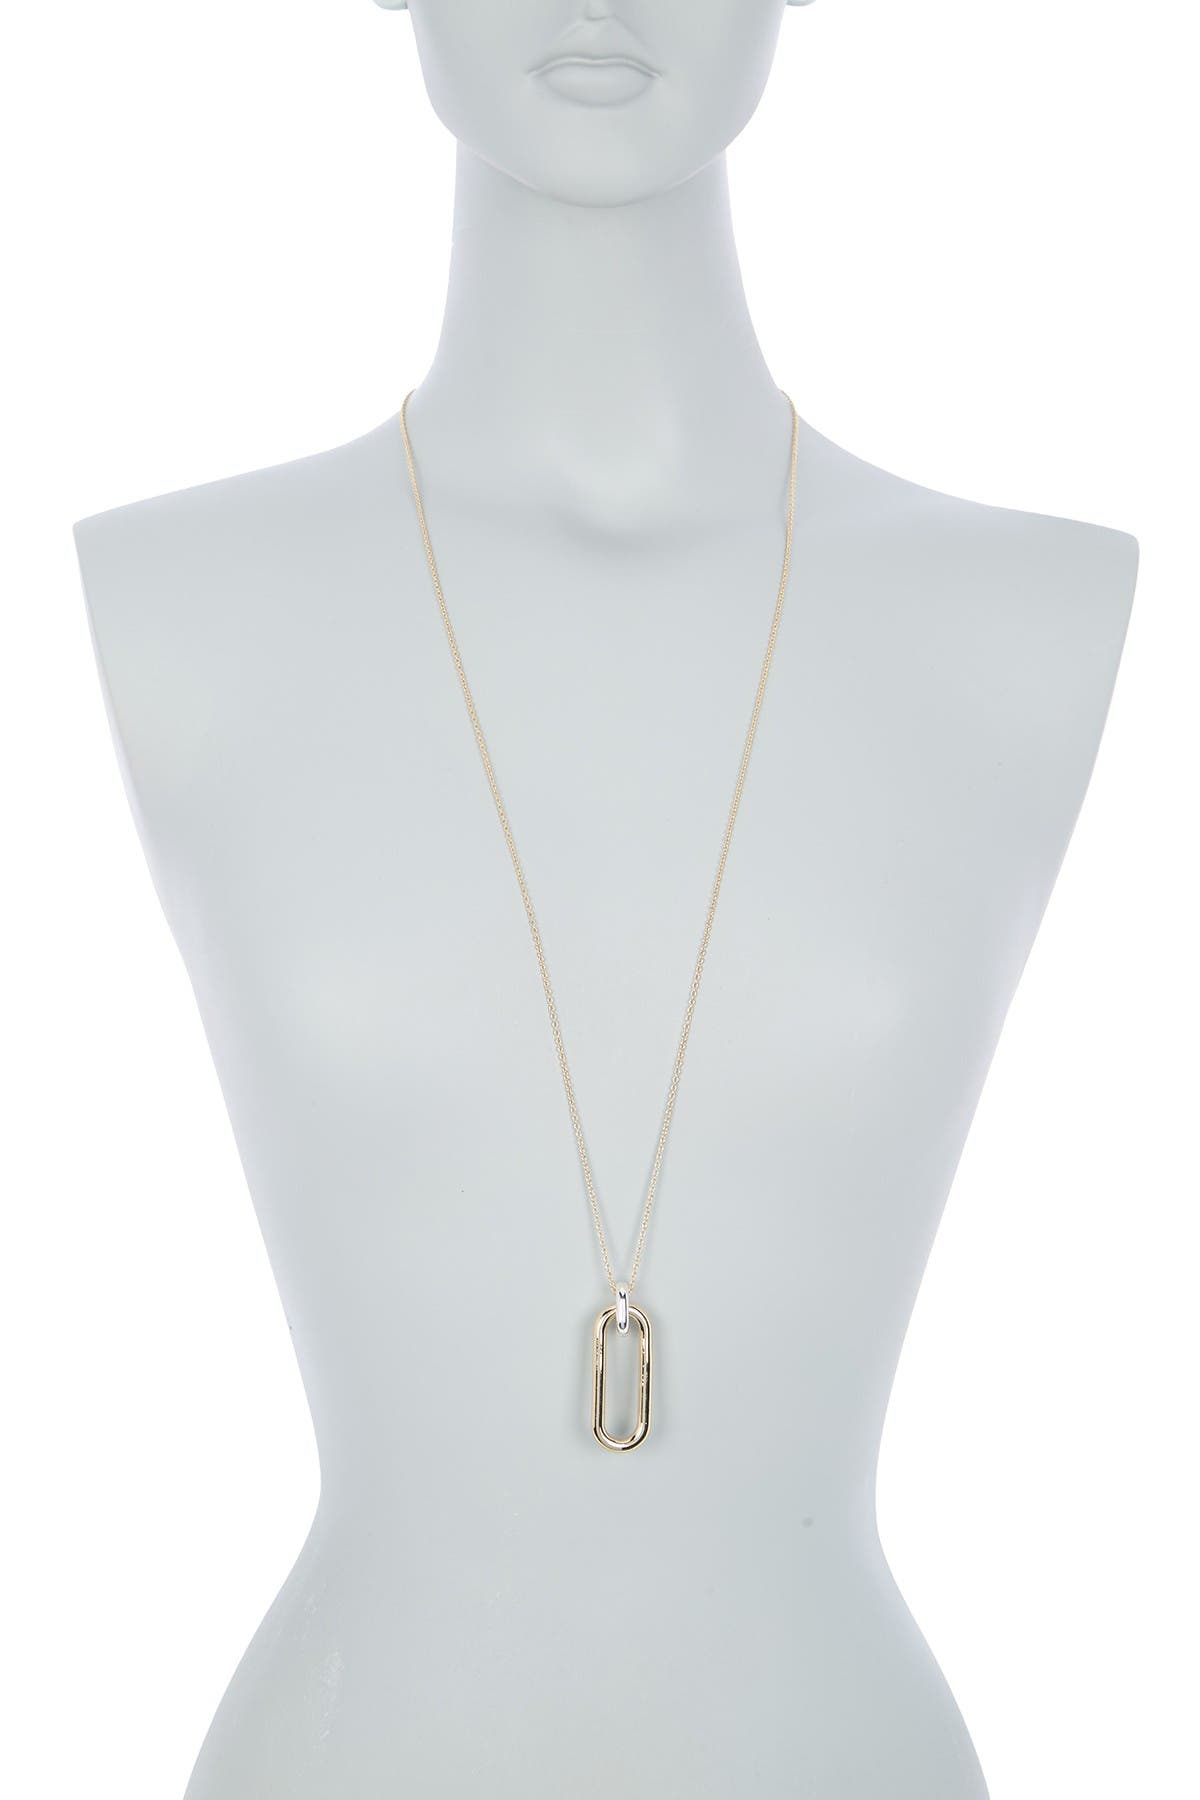 Image of DKNY Gold Link Pendant Necklace